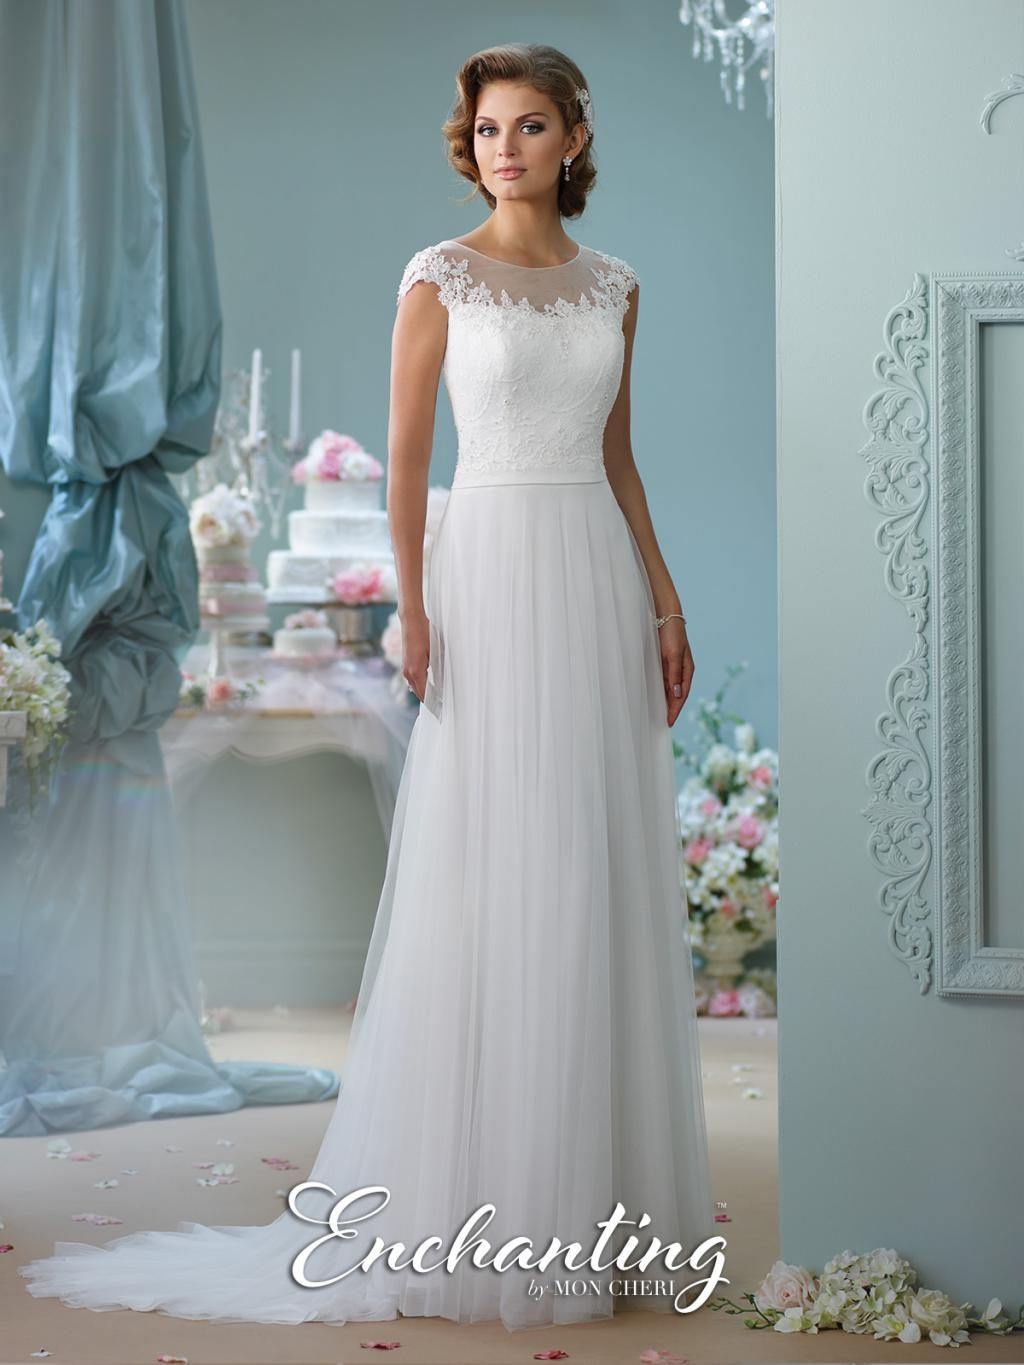 Enchanting Wedding Dress From Princess Diaries 2 Motif - All Wedding ...